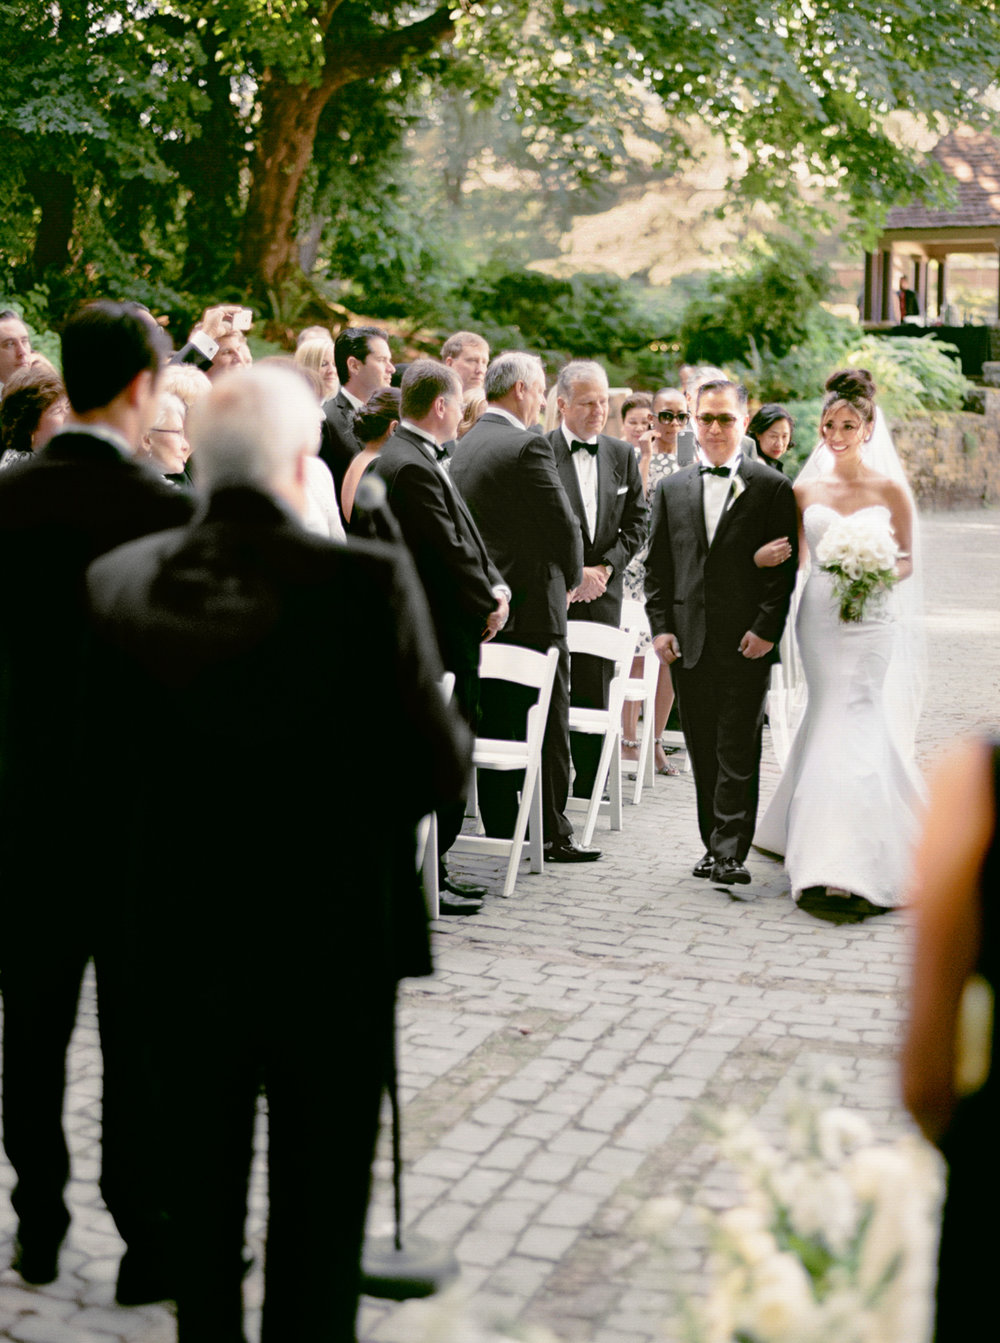 132OutliveCreative_Travel_Photographer_Videographer_Lewis&Clark_Oregon_Elegant_BlackTie_Destination_Wedding.jpg